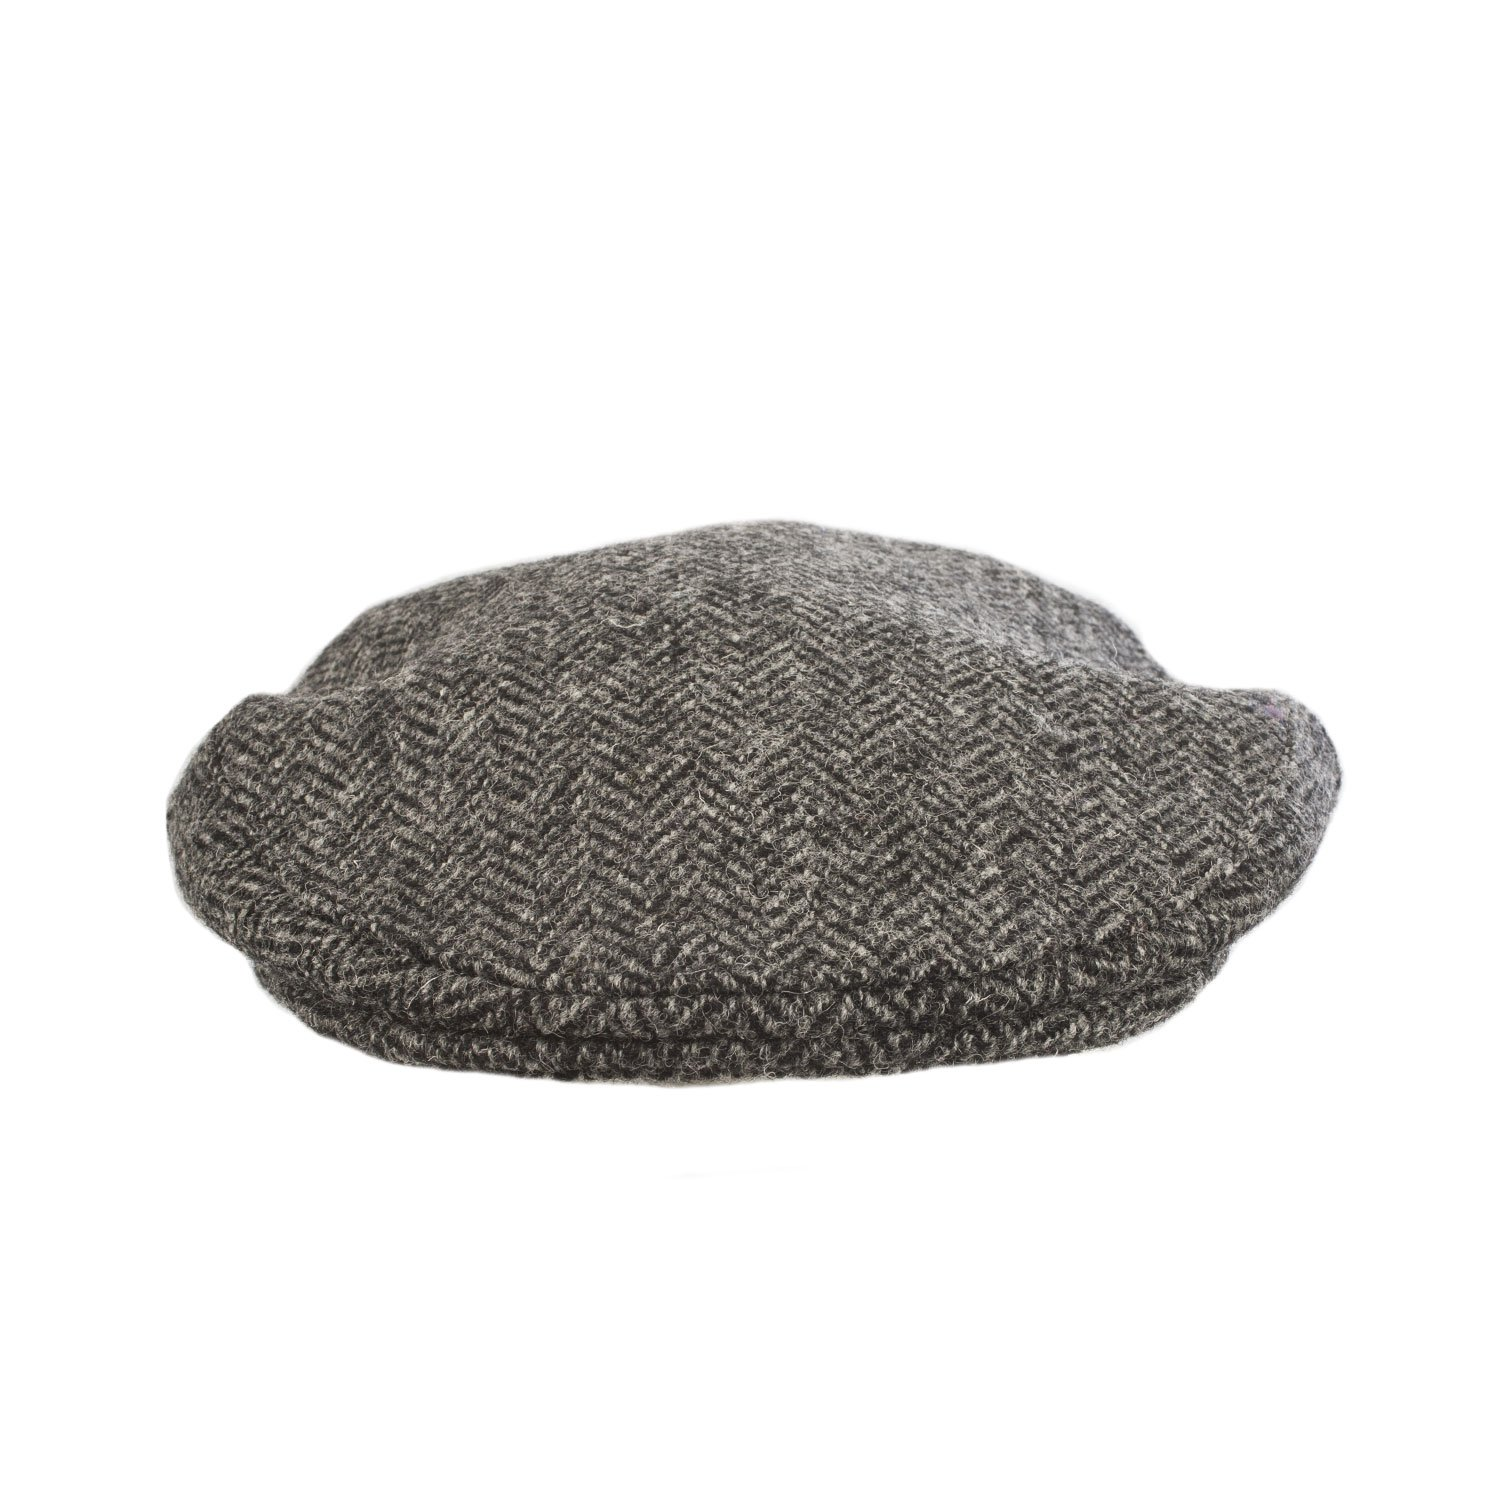 GLEN APPIN Men s Classic British Harris Tweed County Cap Charcoal (XL) at  Amazon Men s Clothing store  557e23cee57d